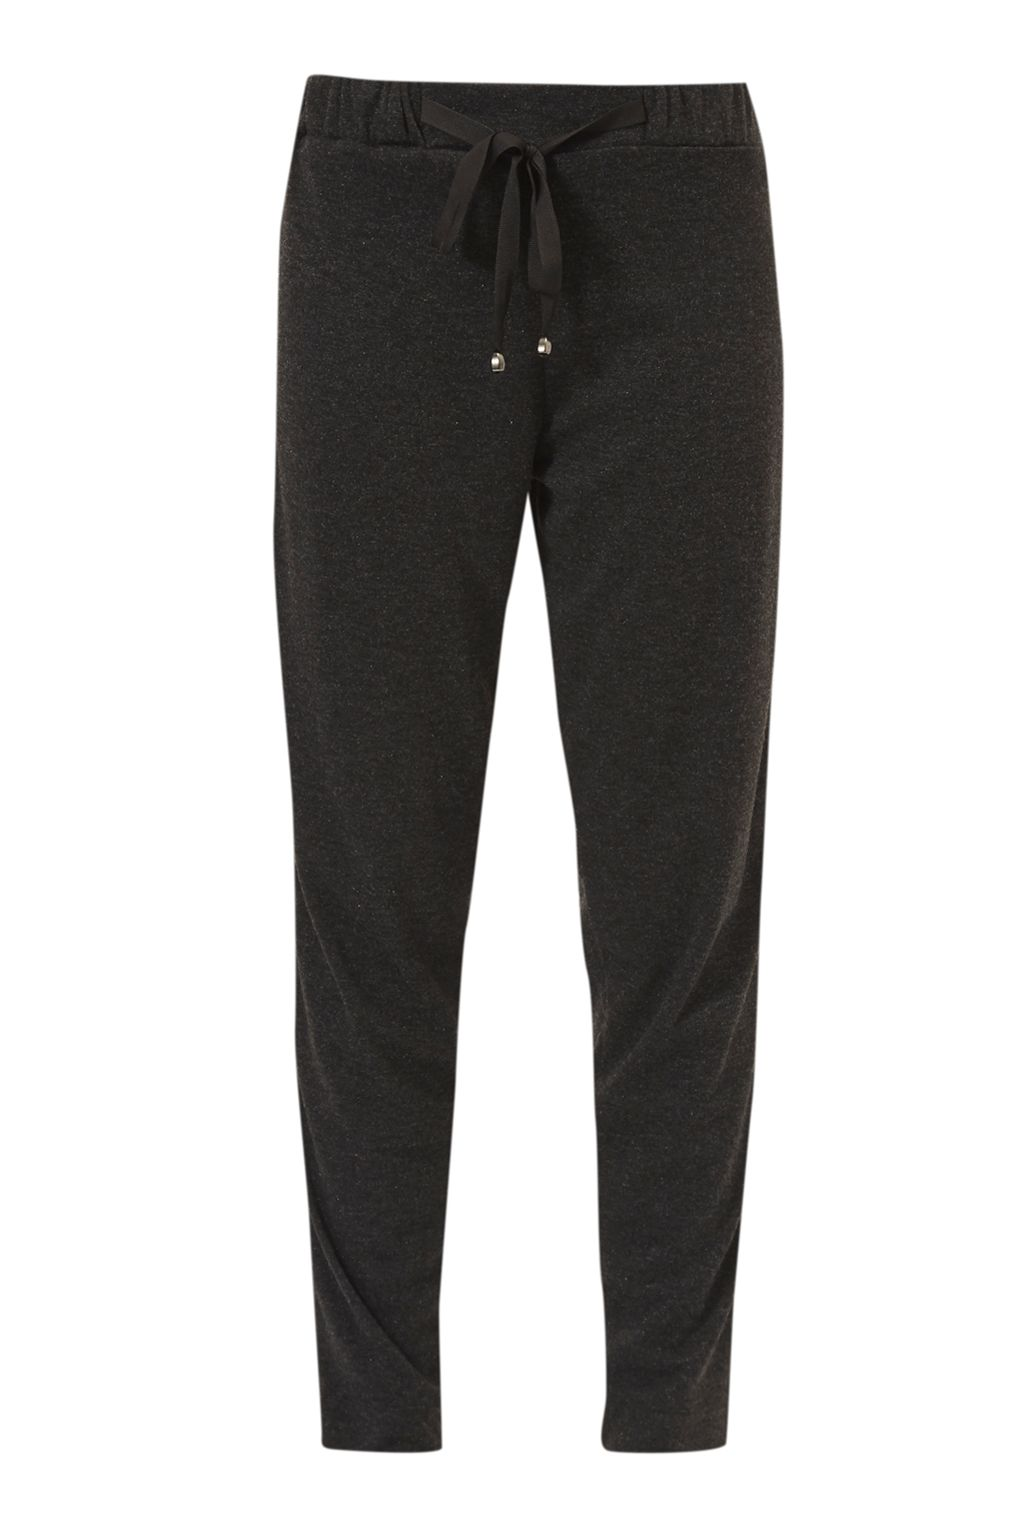 Great Plains Sydney Jersey Posh Joggers, Granite